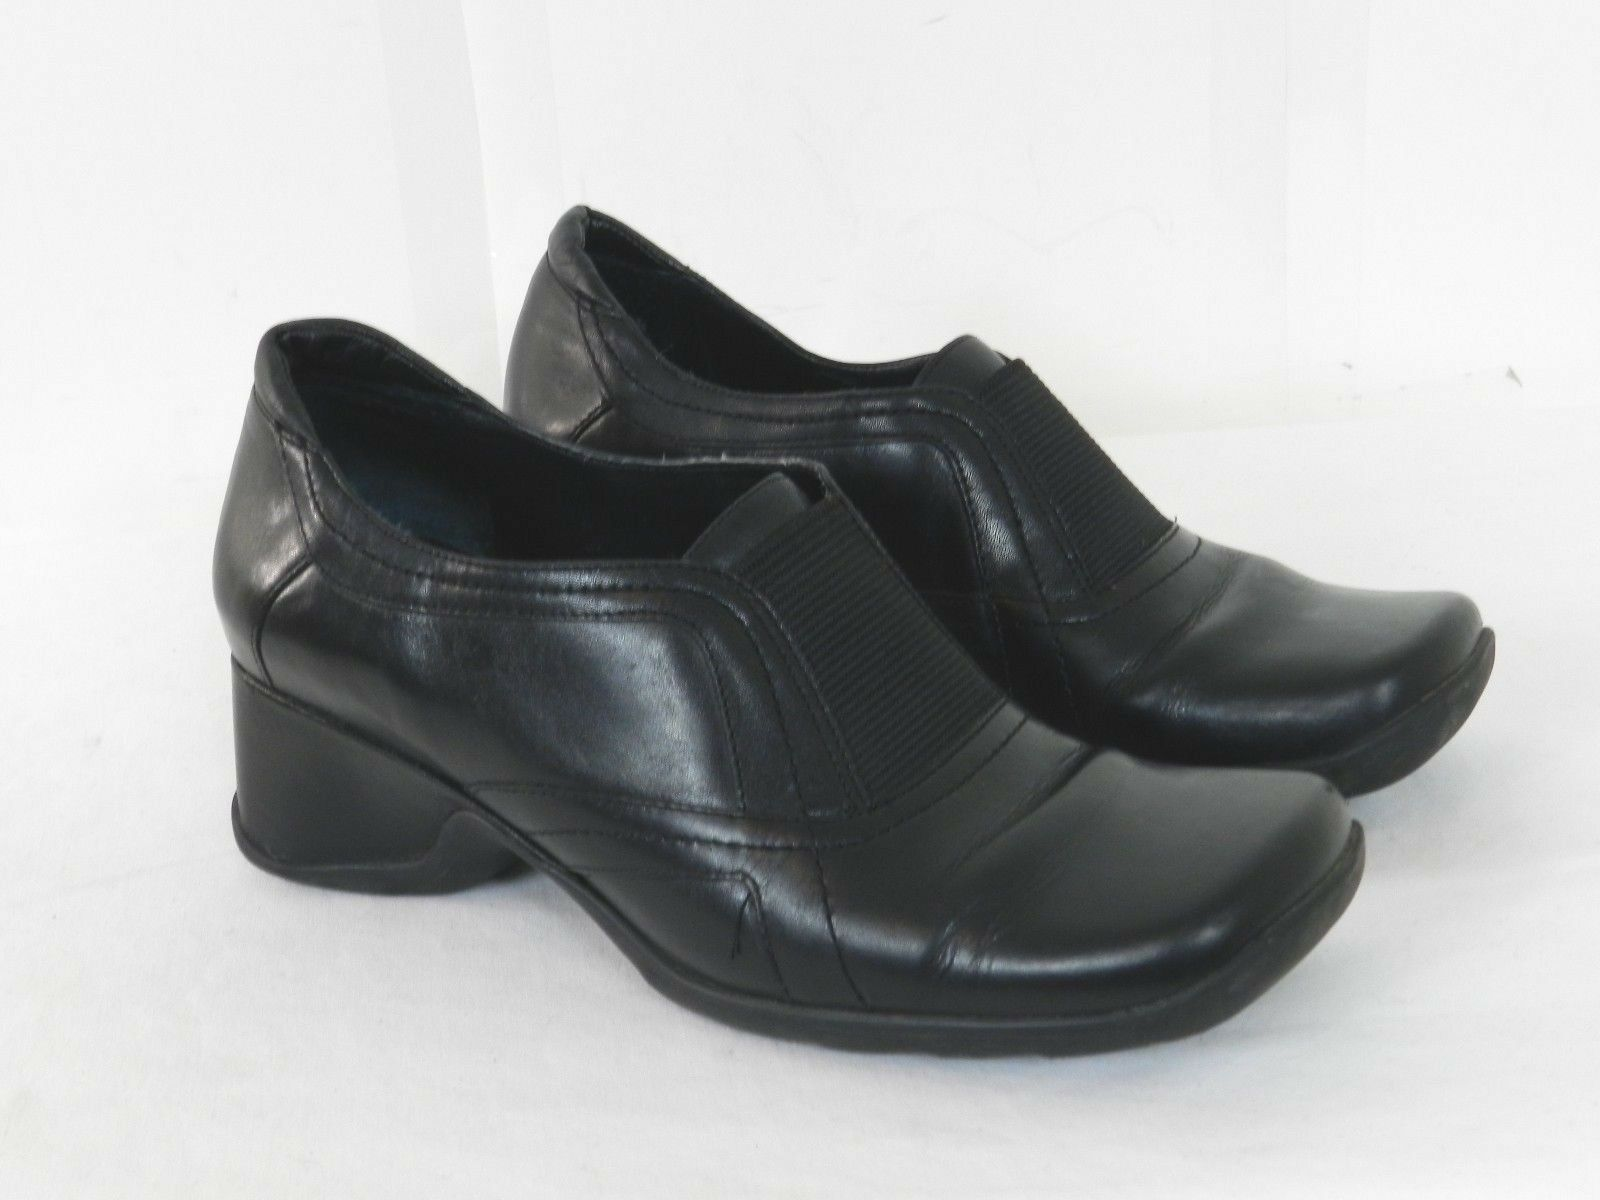 Kenneth Cole Reaction Womens Wedge Loafers Pumps Career Size 6 Black Leather